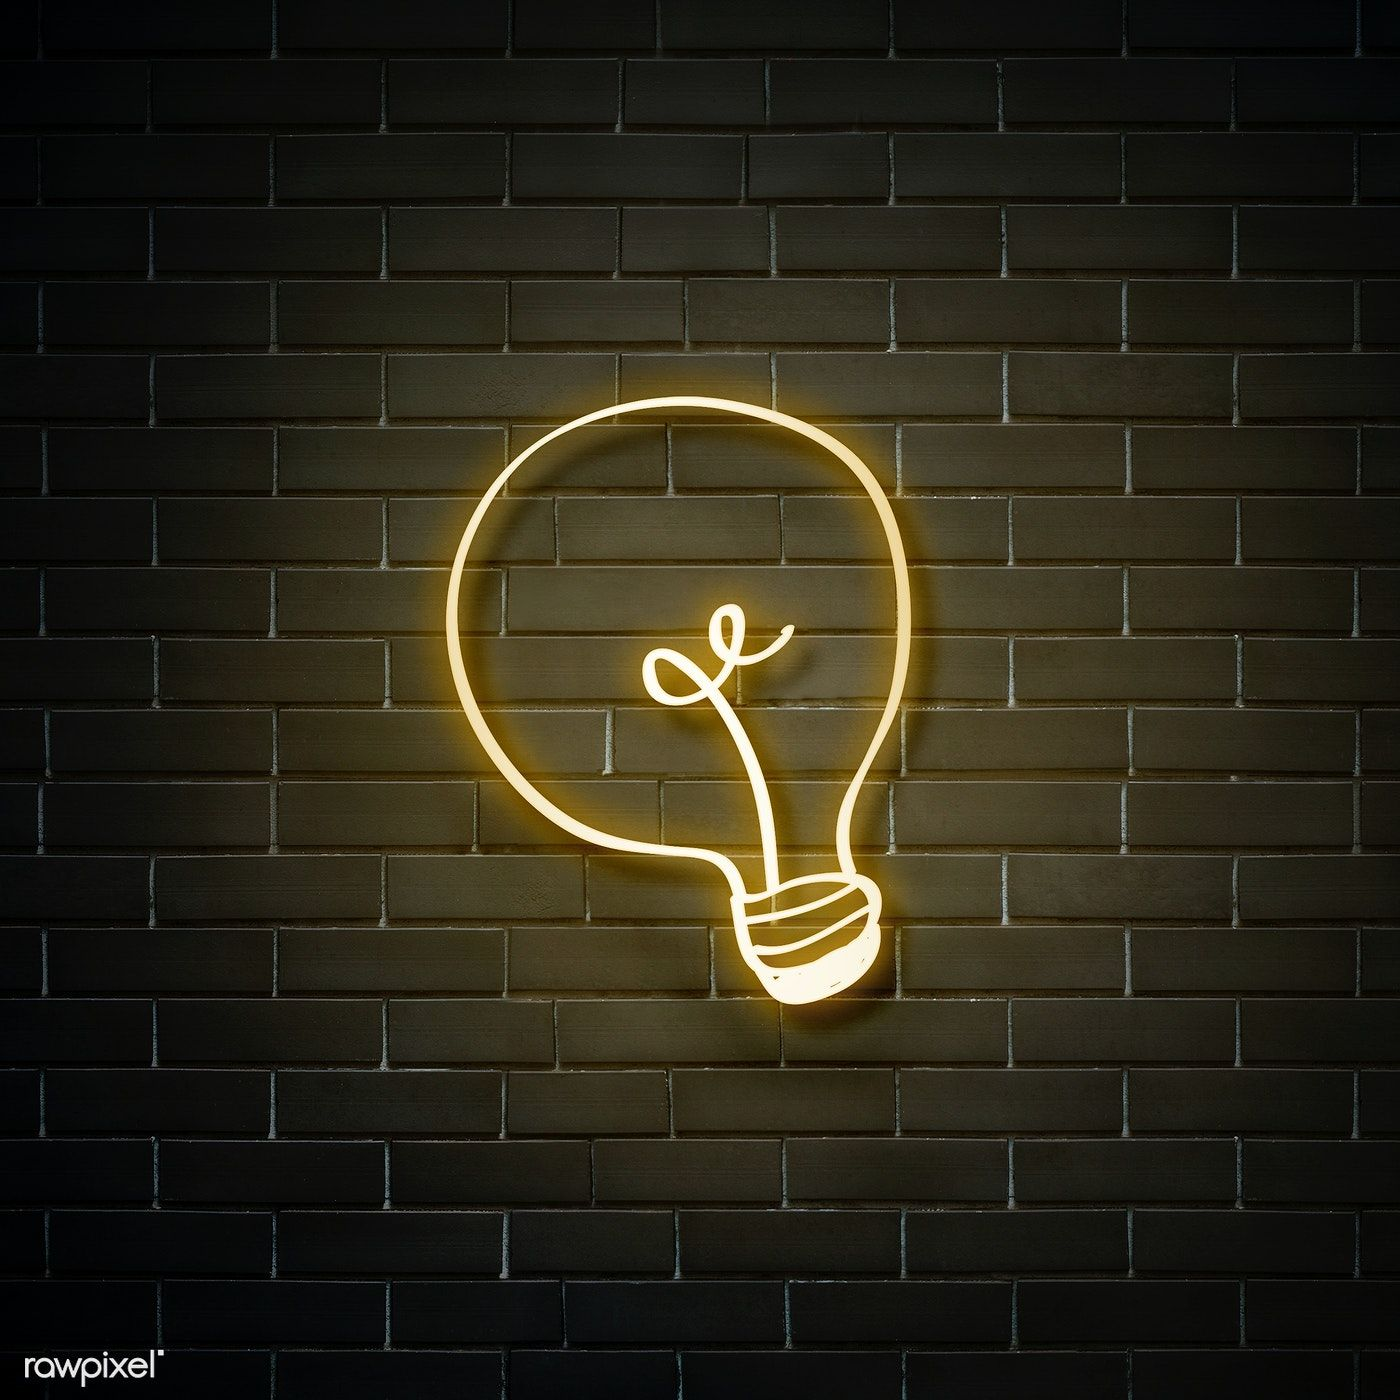 Neon yellow bulb on a walll free image by